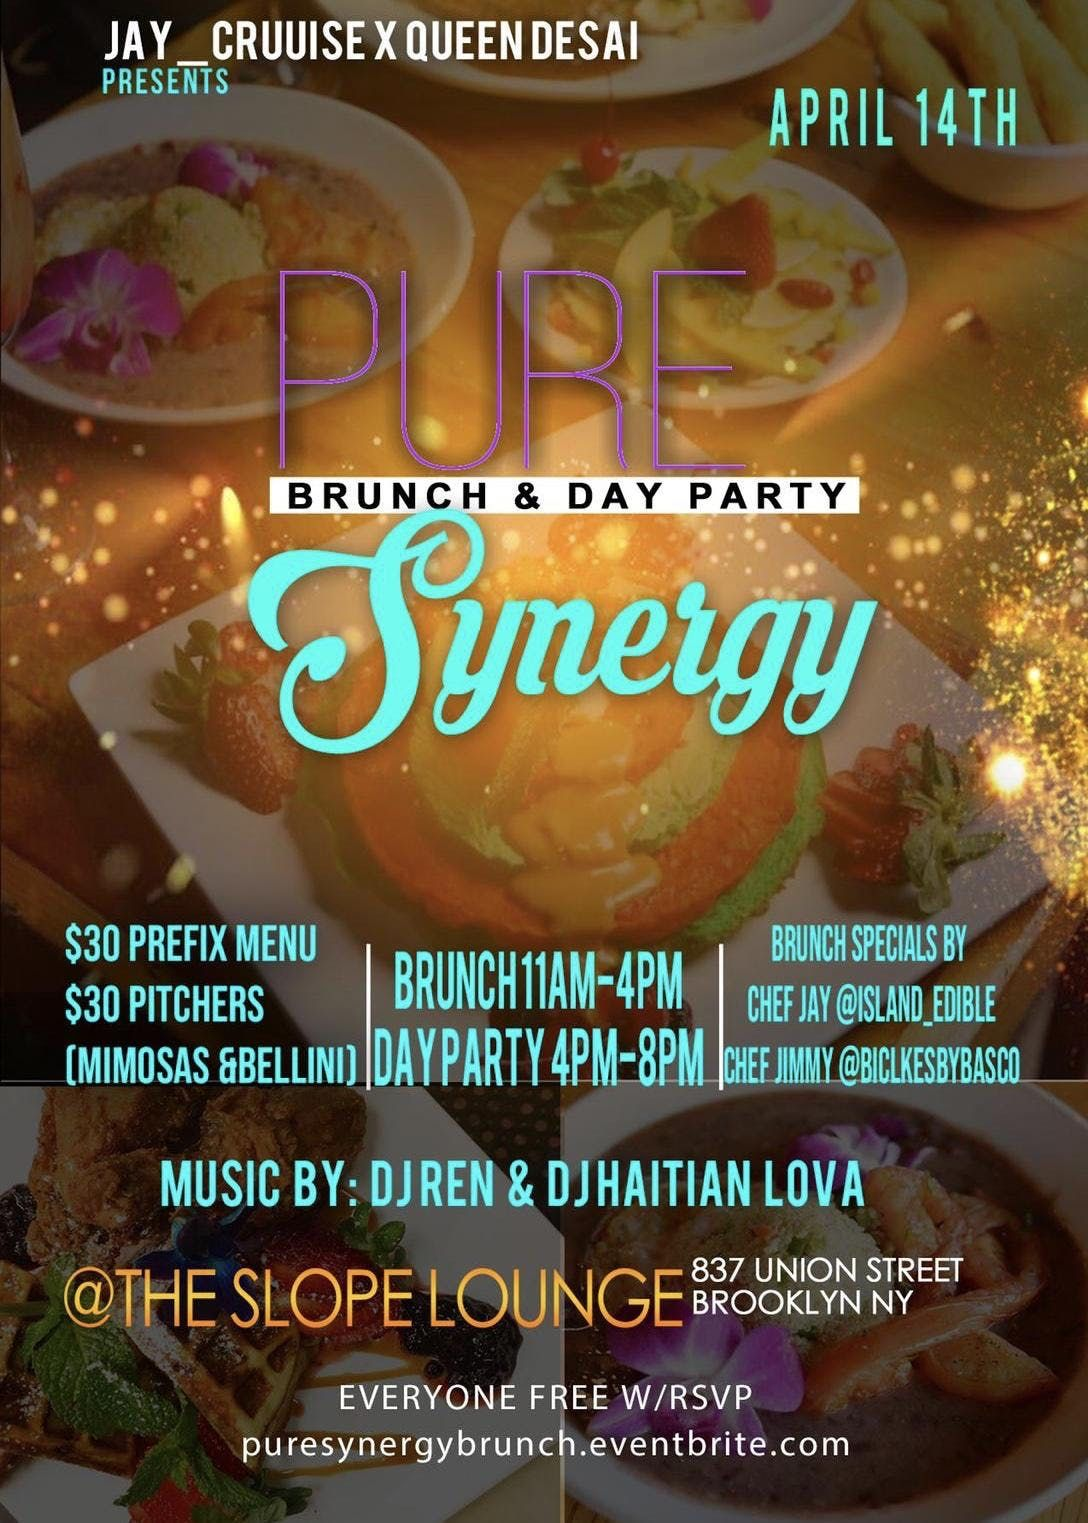 Pure synergy brunch